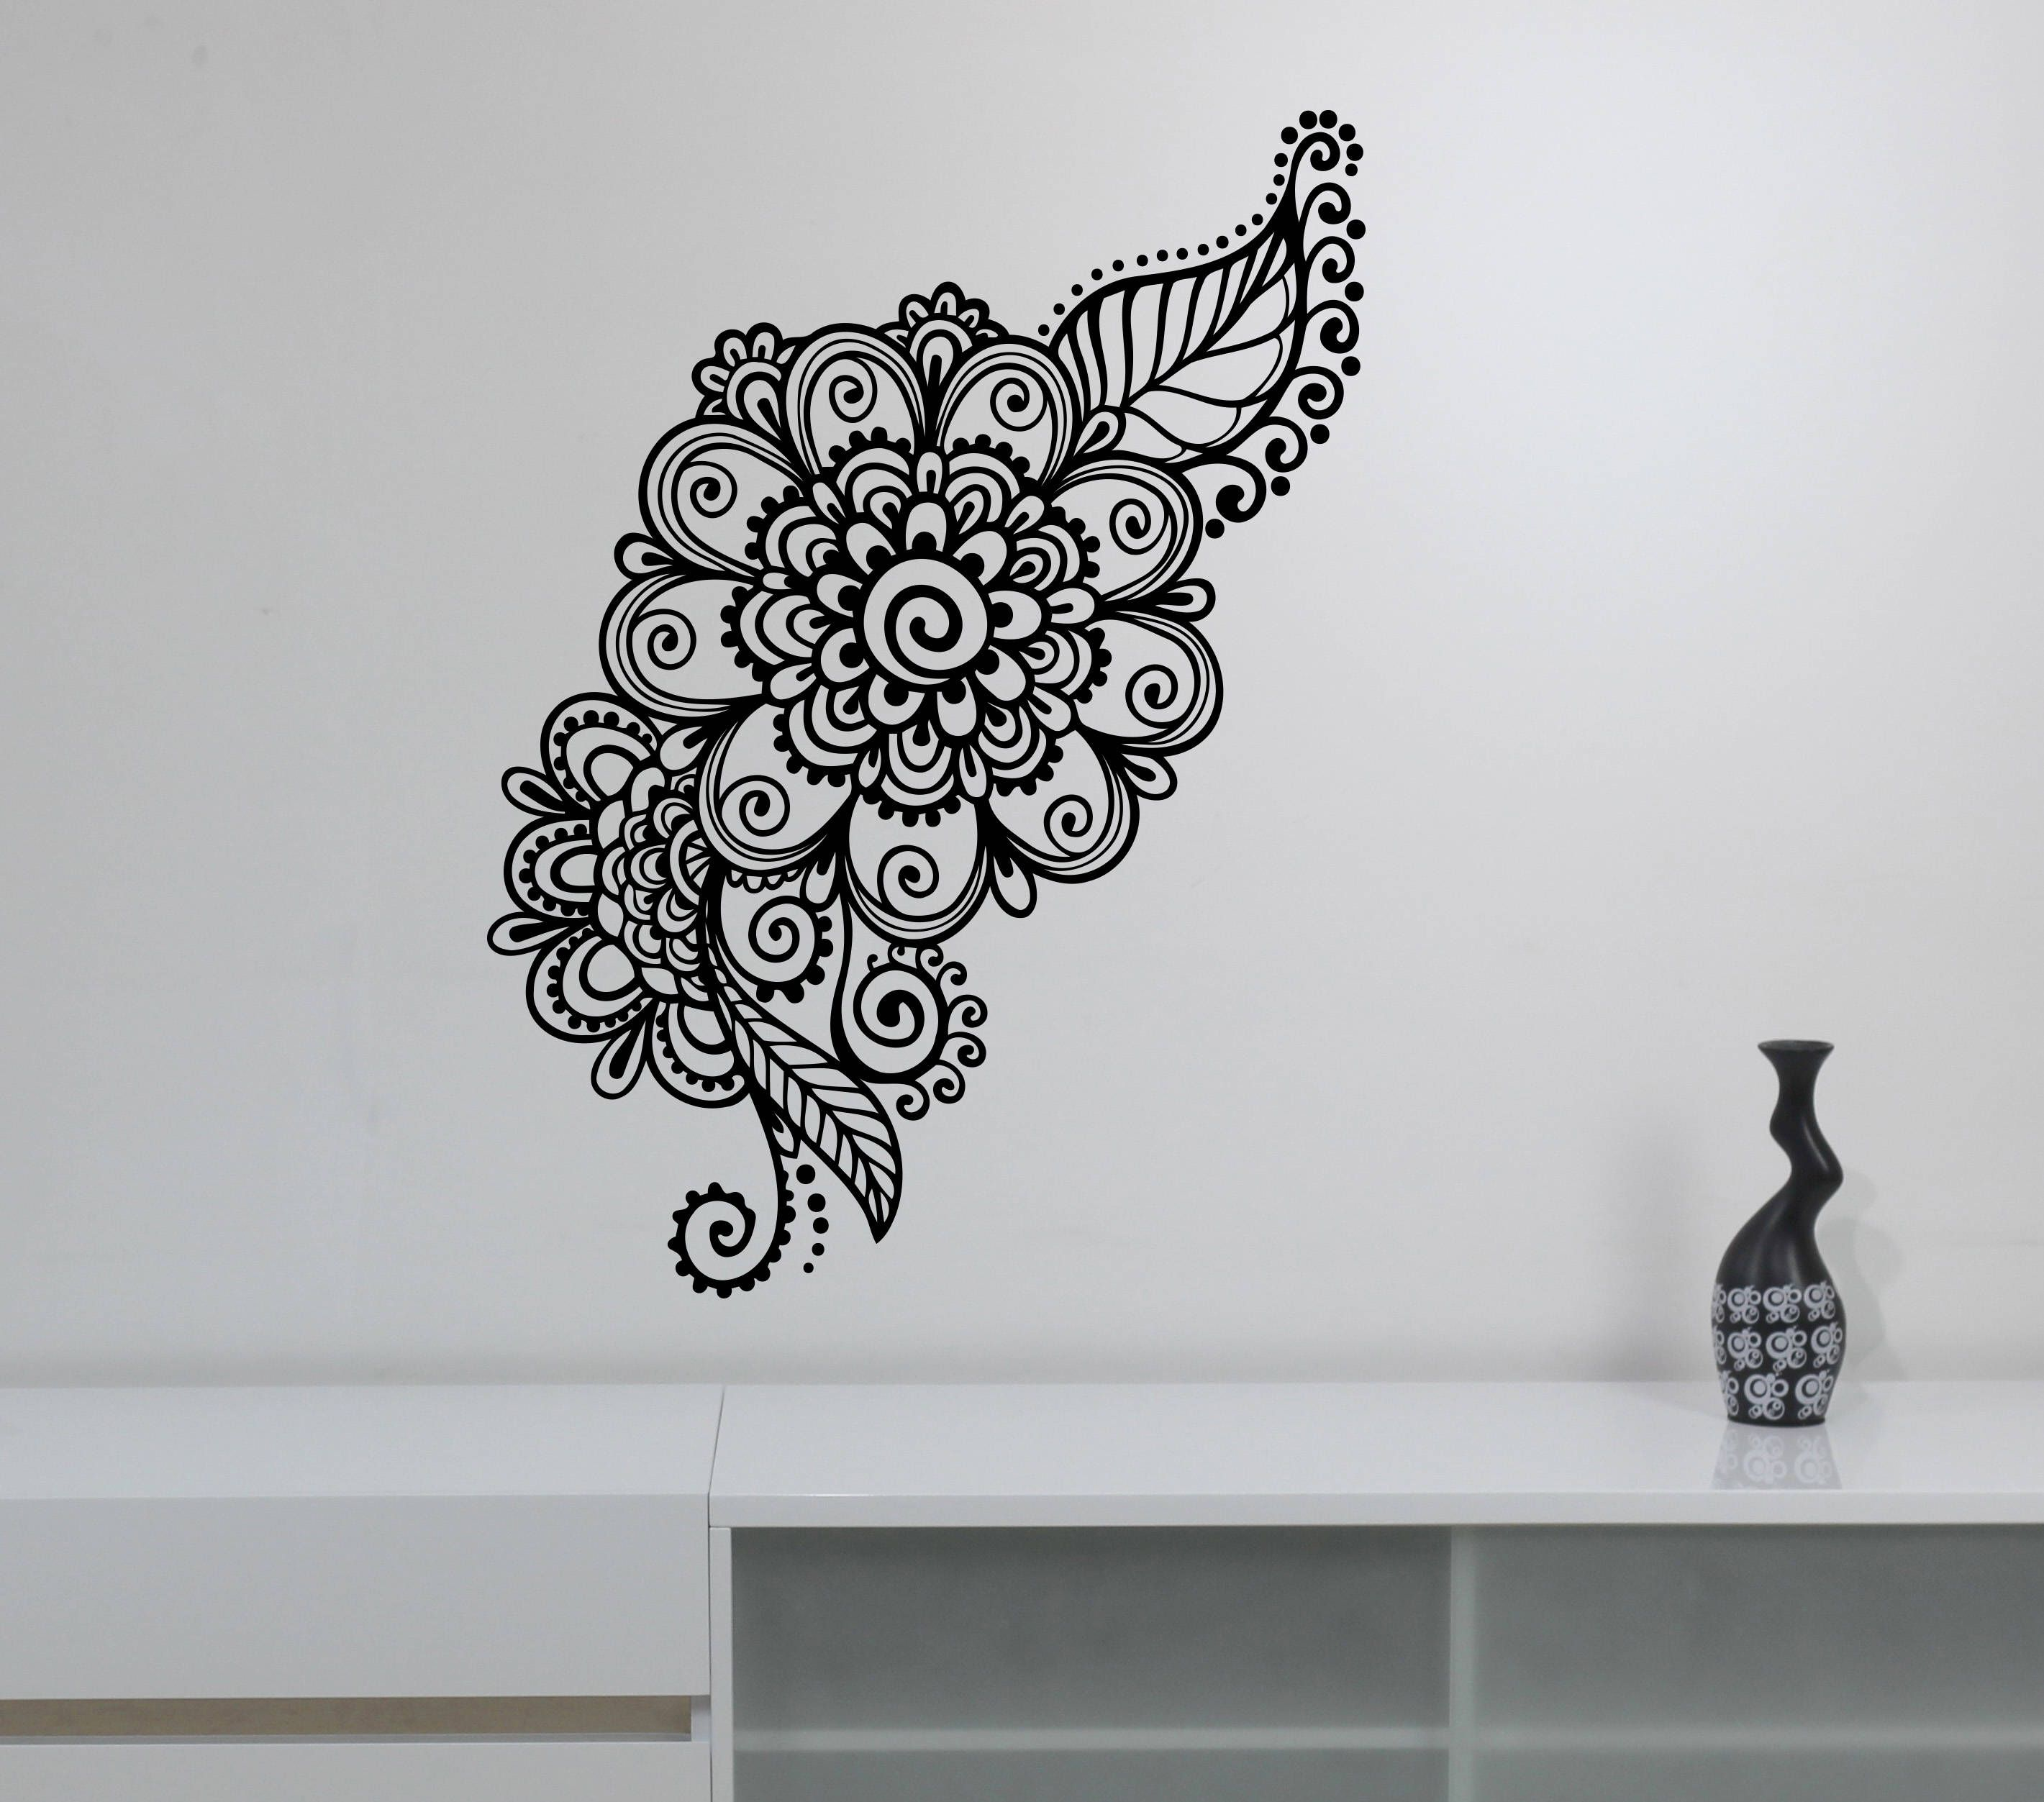 141d91183 Mehndi Wall Sticker Henna Paisley Flowers Vinyl Decal Floral Pattern  Ornament Art Decorations for Home Room